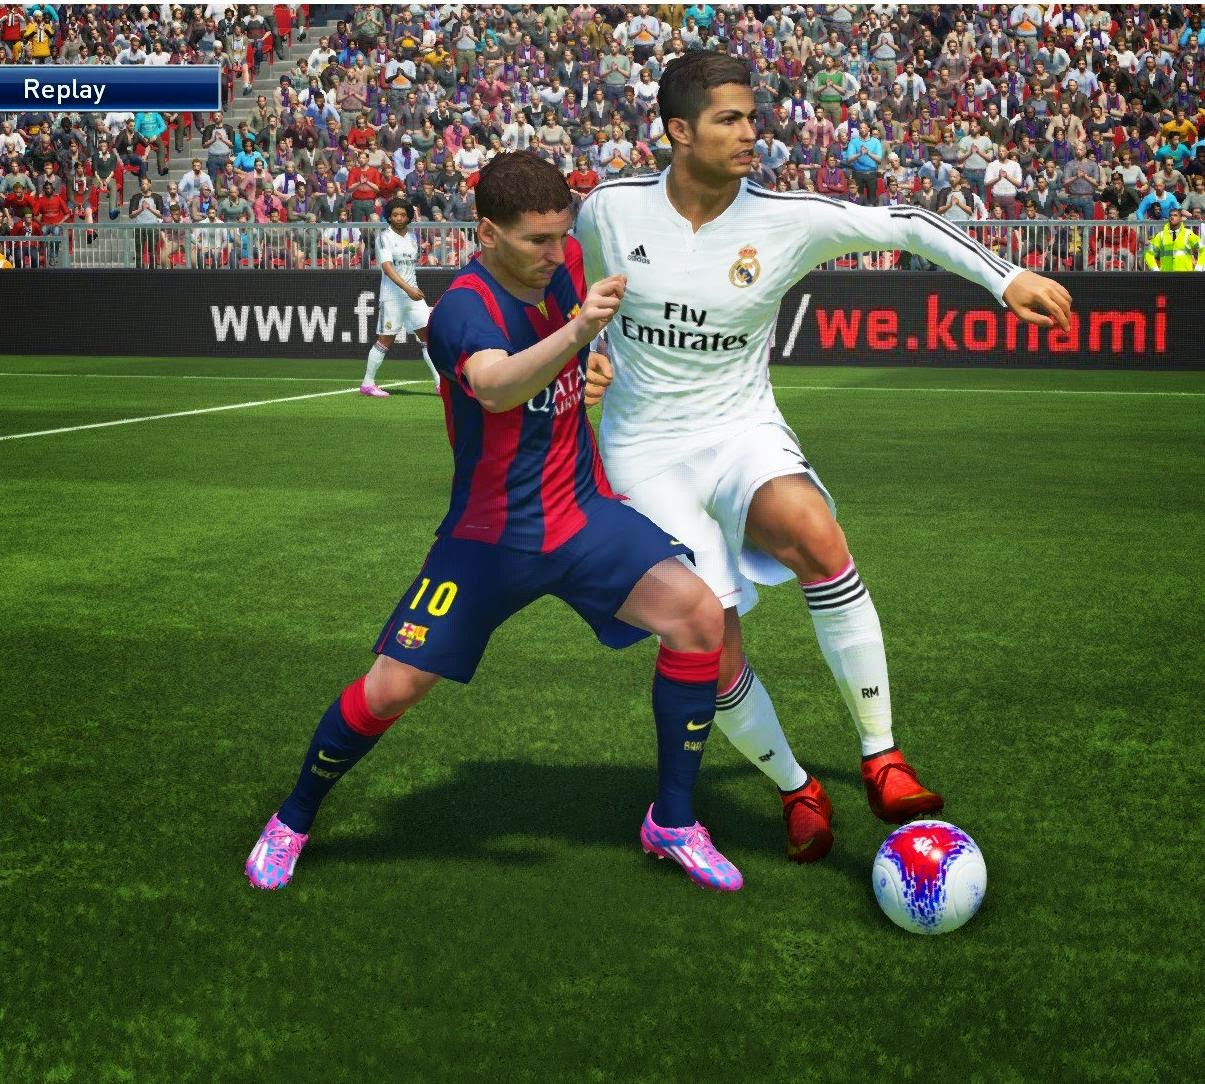 Download Pes 2015 Apk Data Free Android games